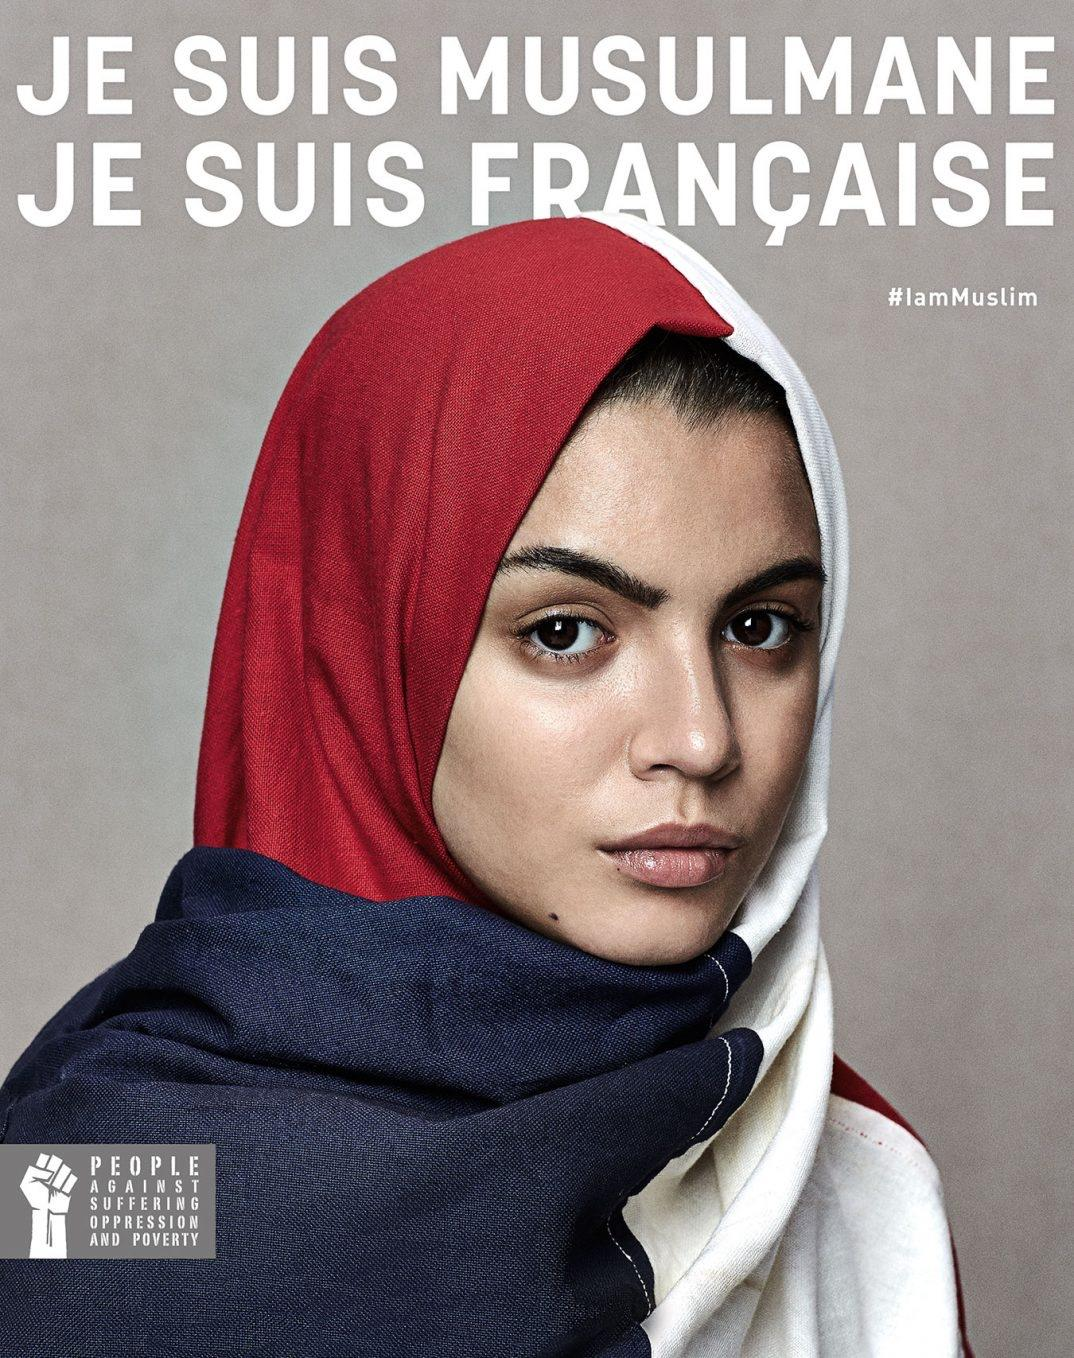 PASSOP Print Ad - I am French